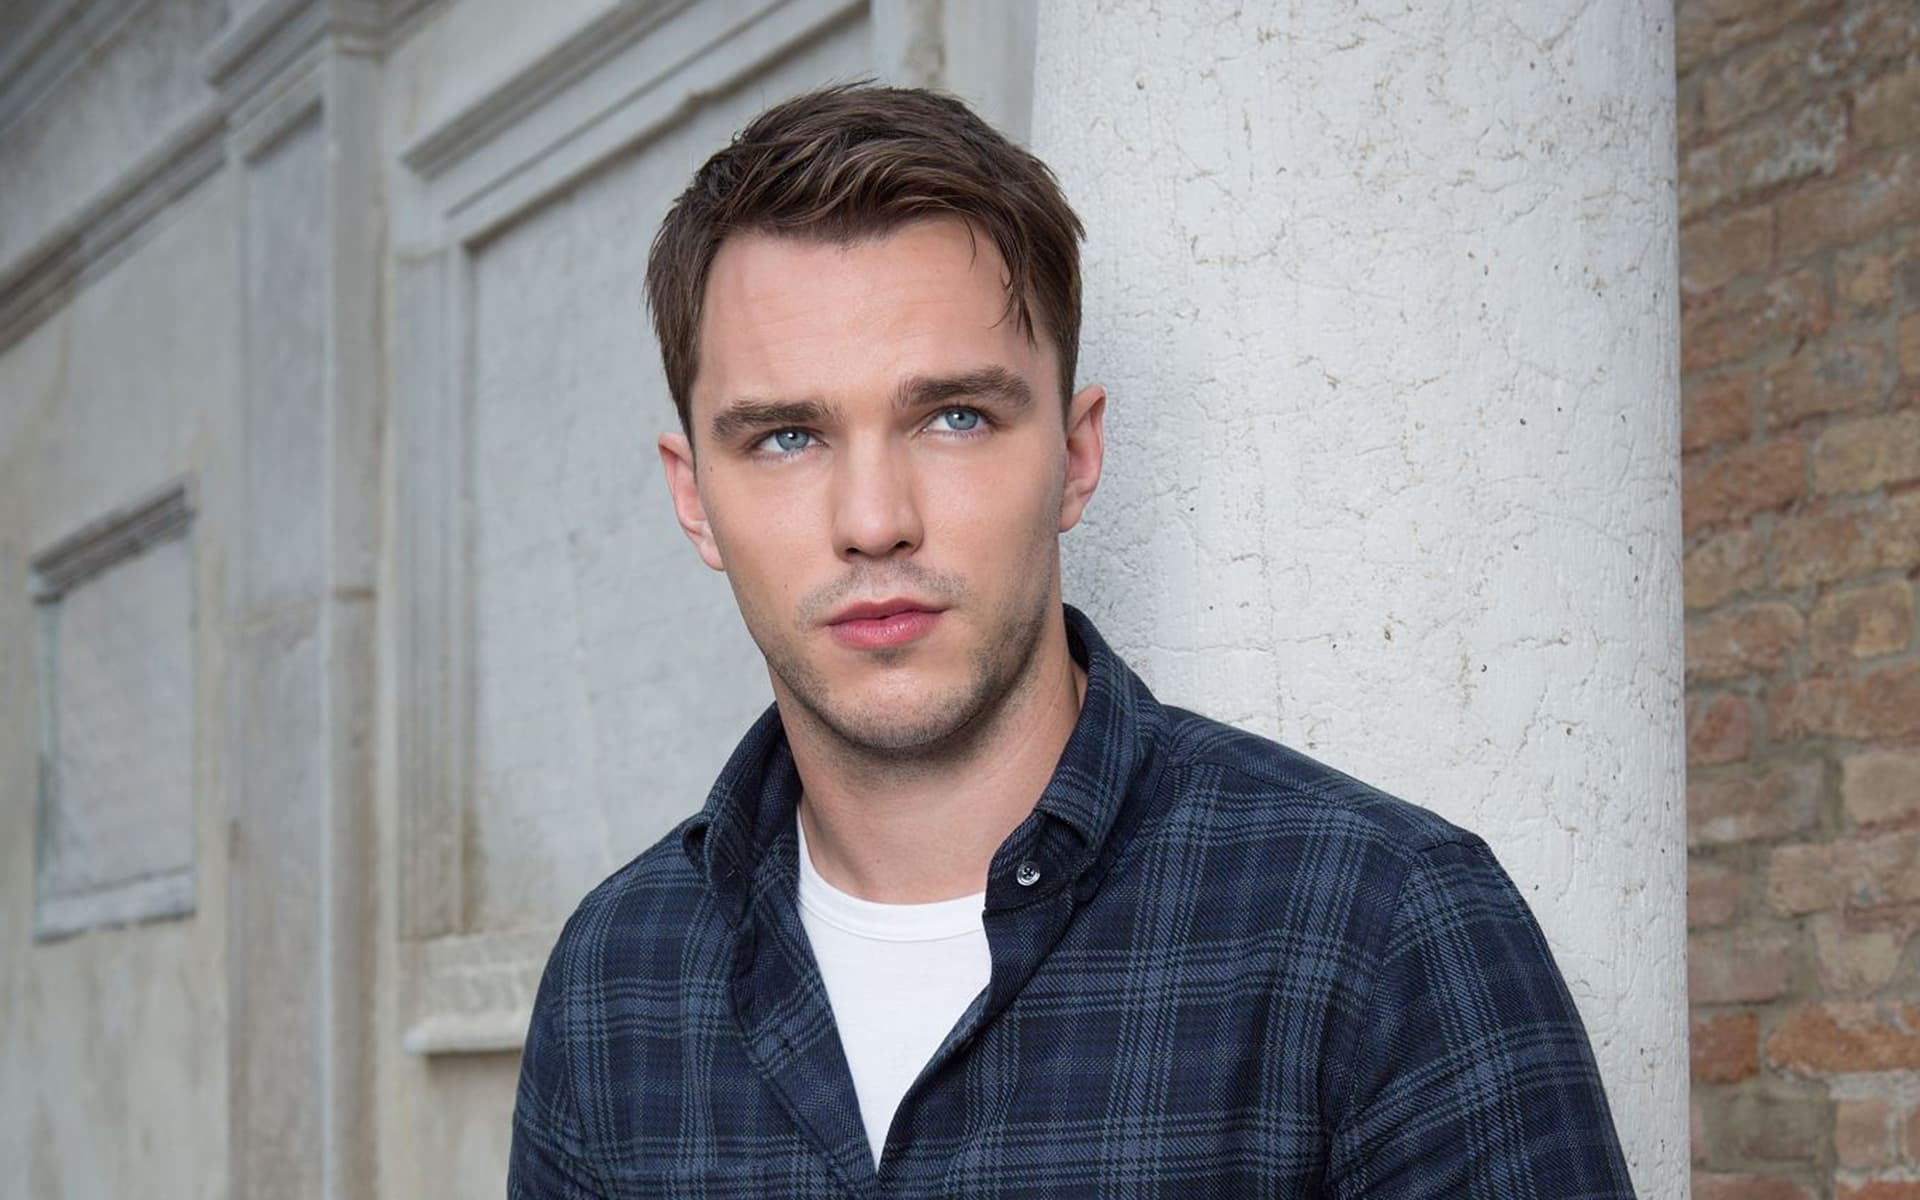 nicholas hoult wallpaper background - photo #21